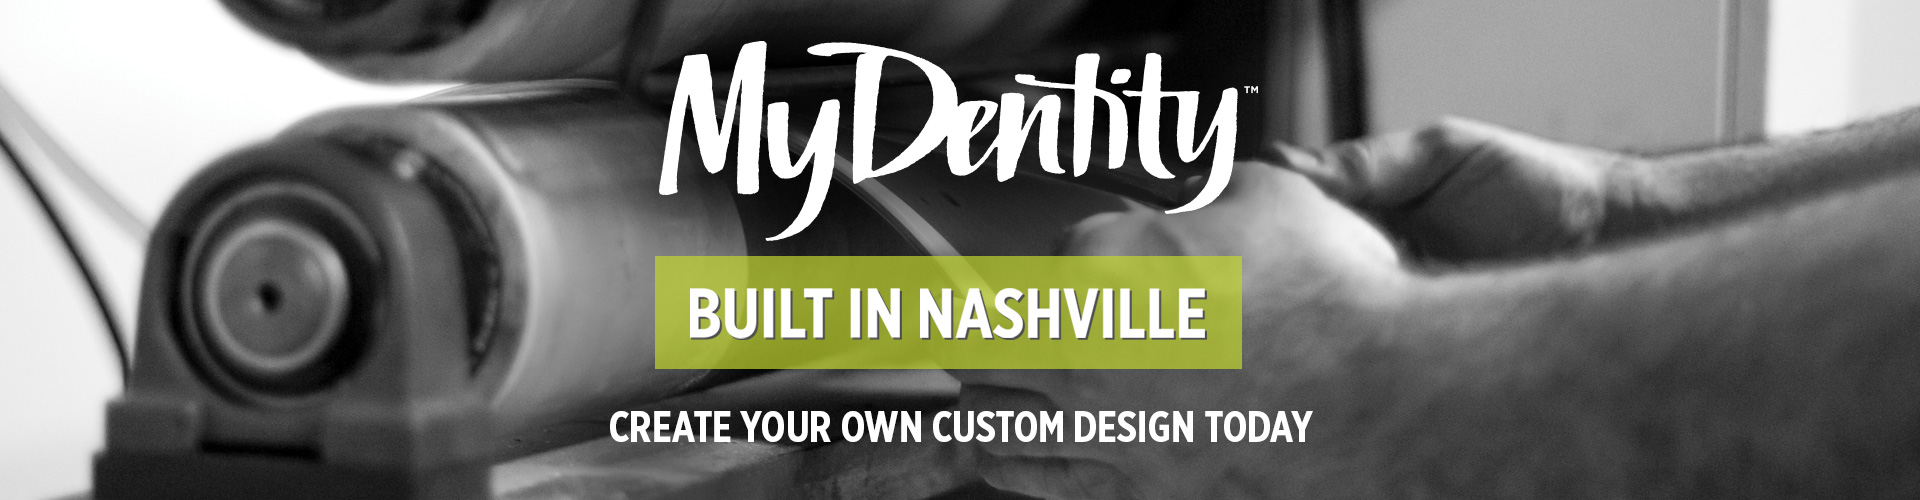 MyDentity Built In Nashville